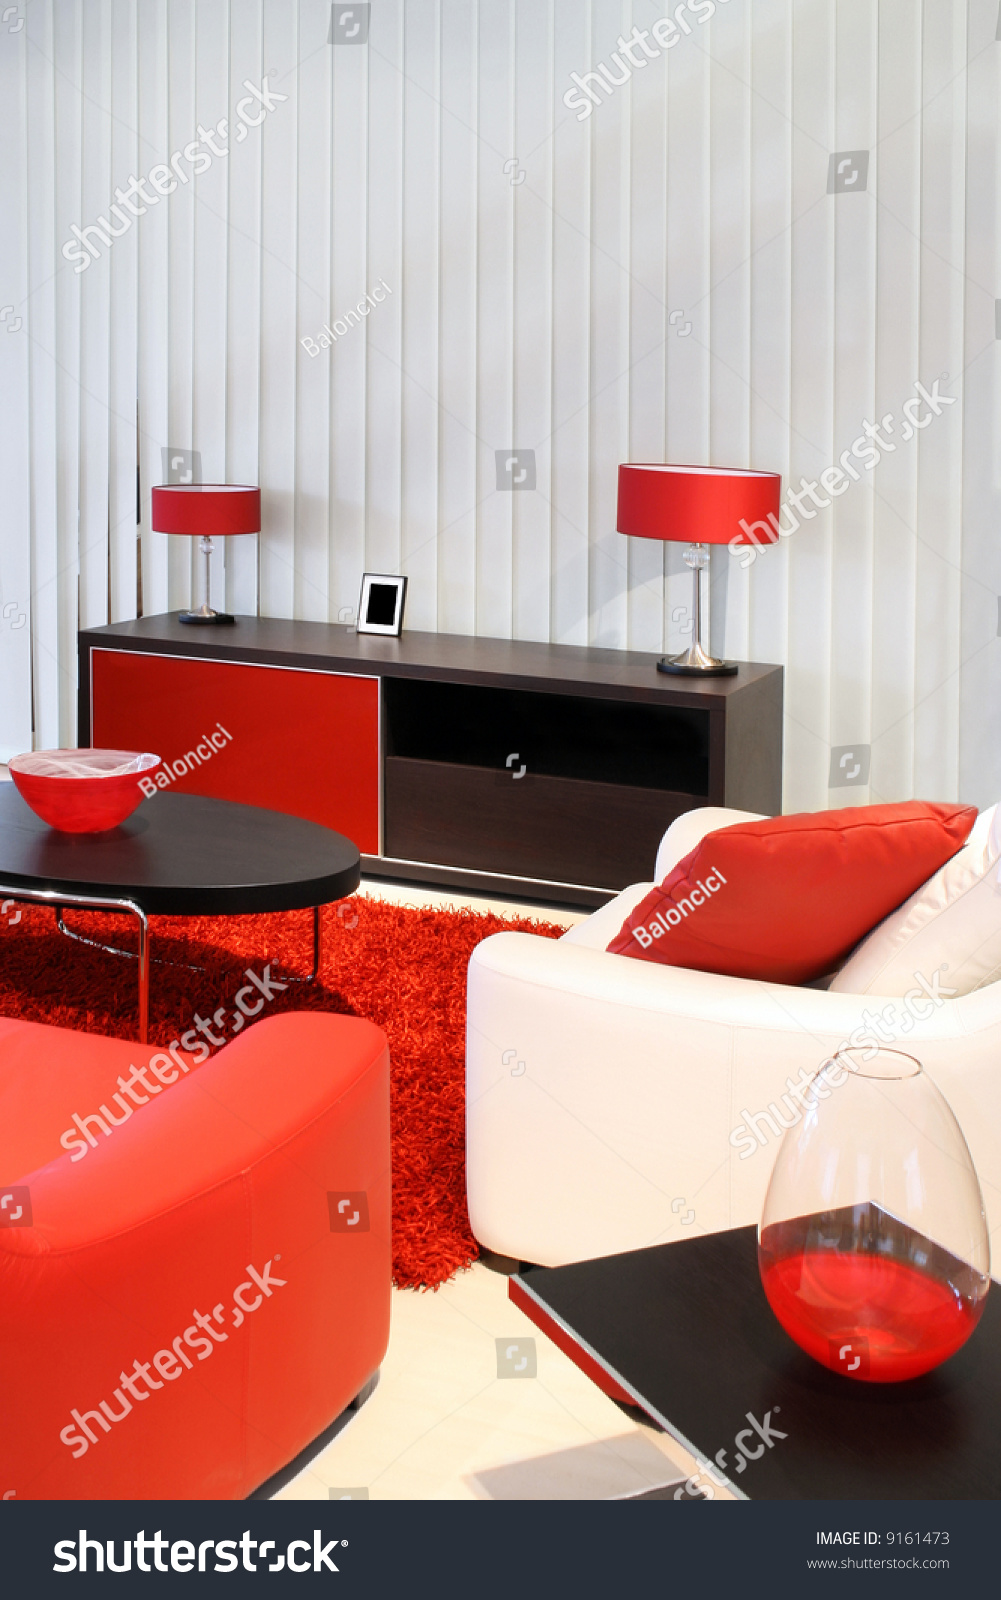 Modern Living Room With Red And Black Furniture Stock Photo 9161473 Shutter